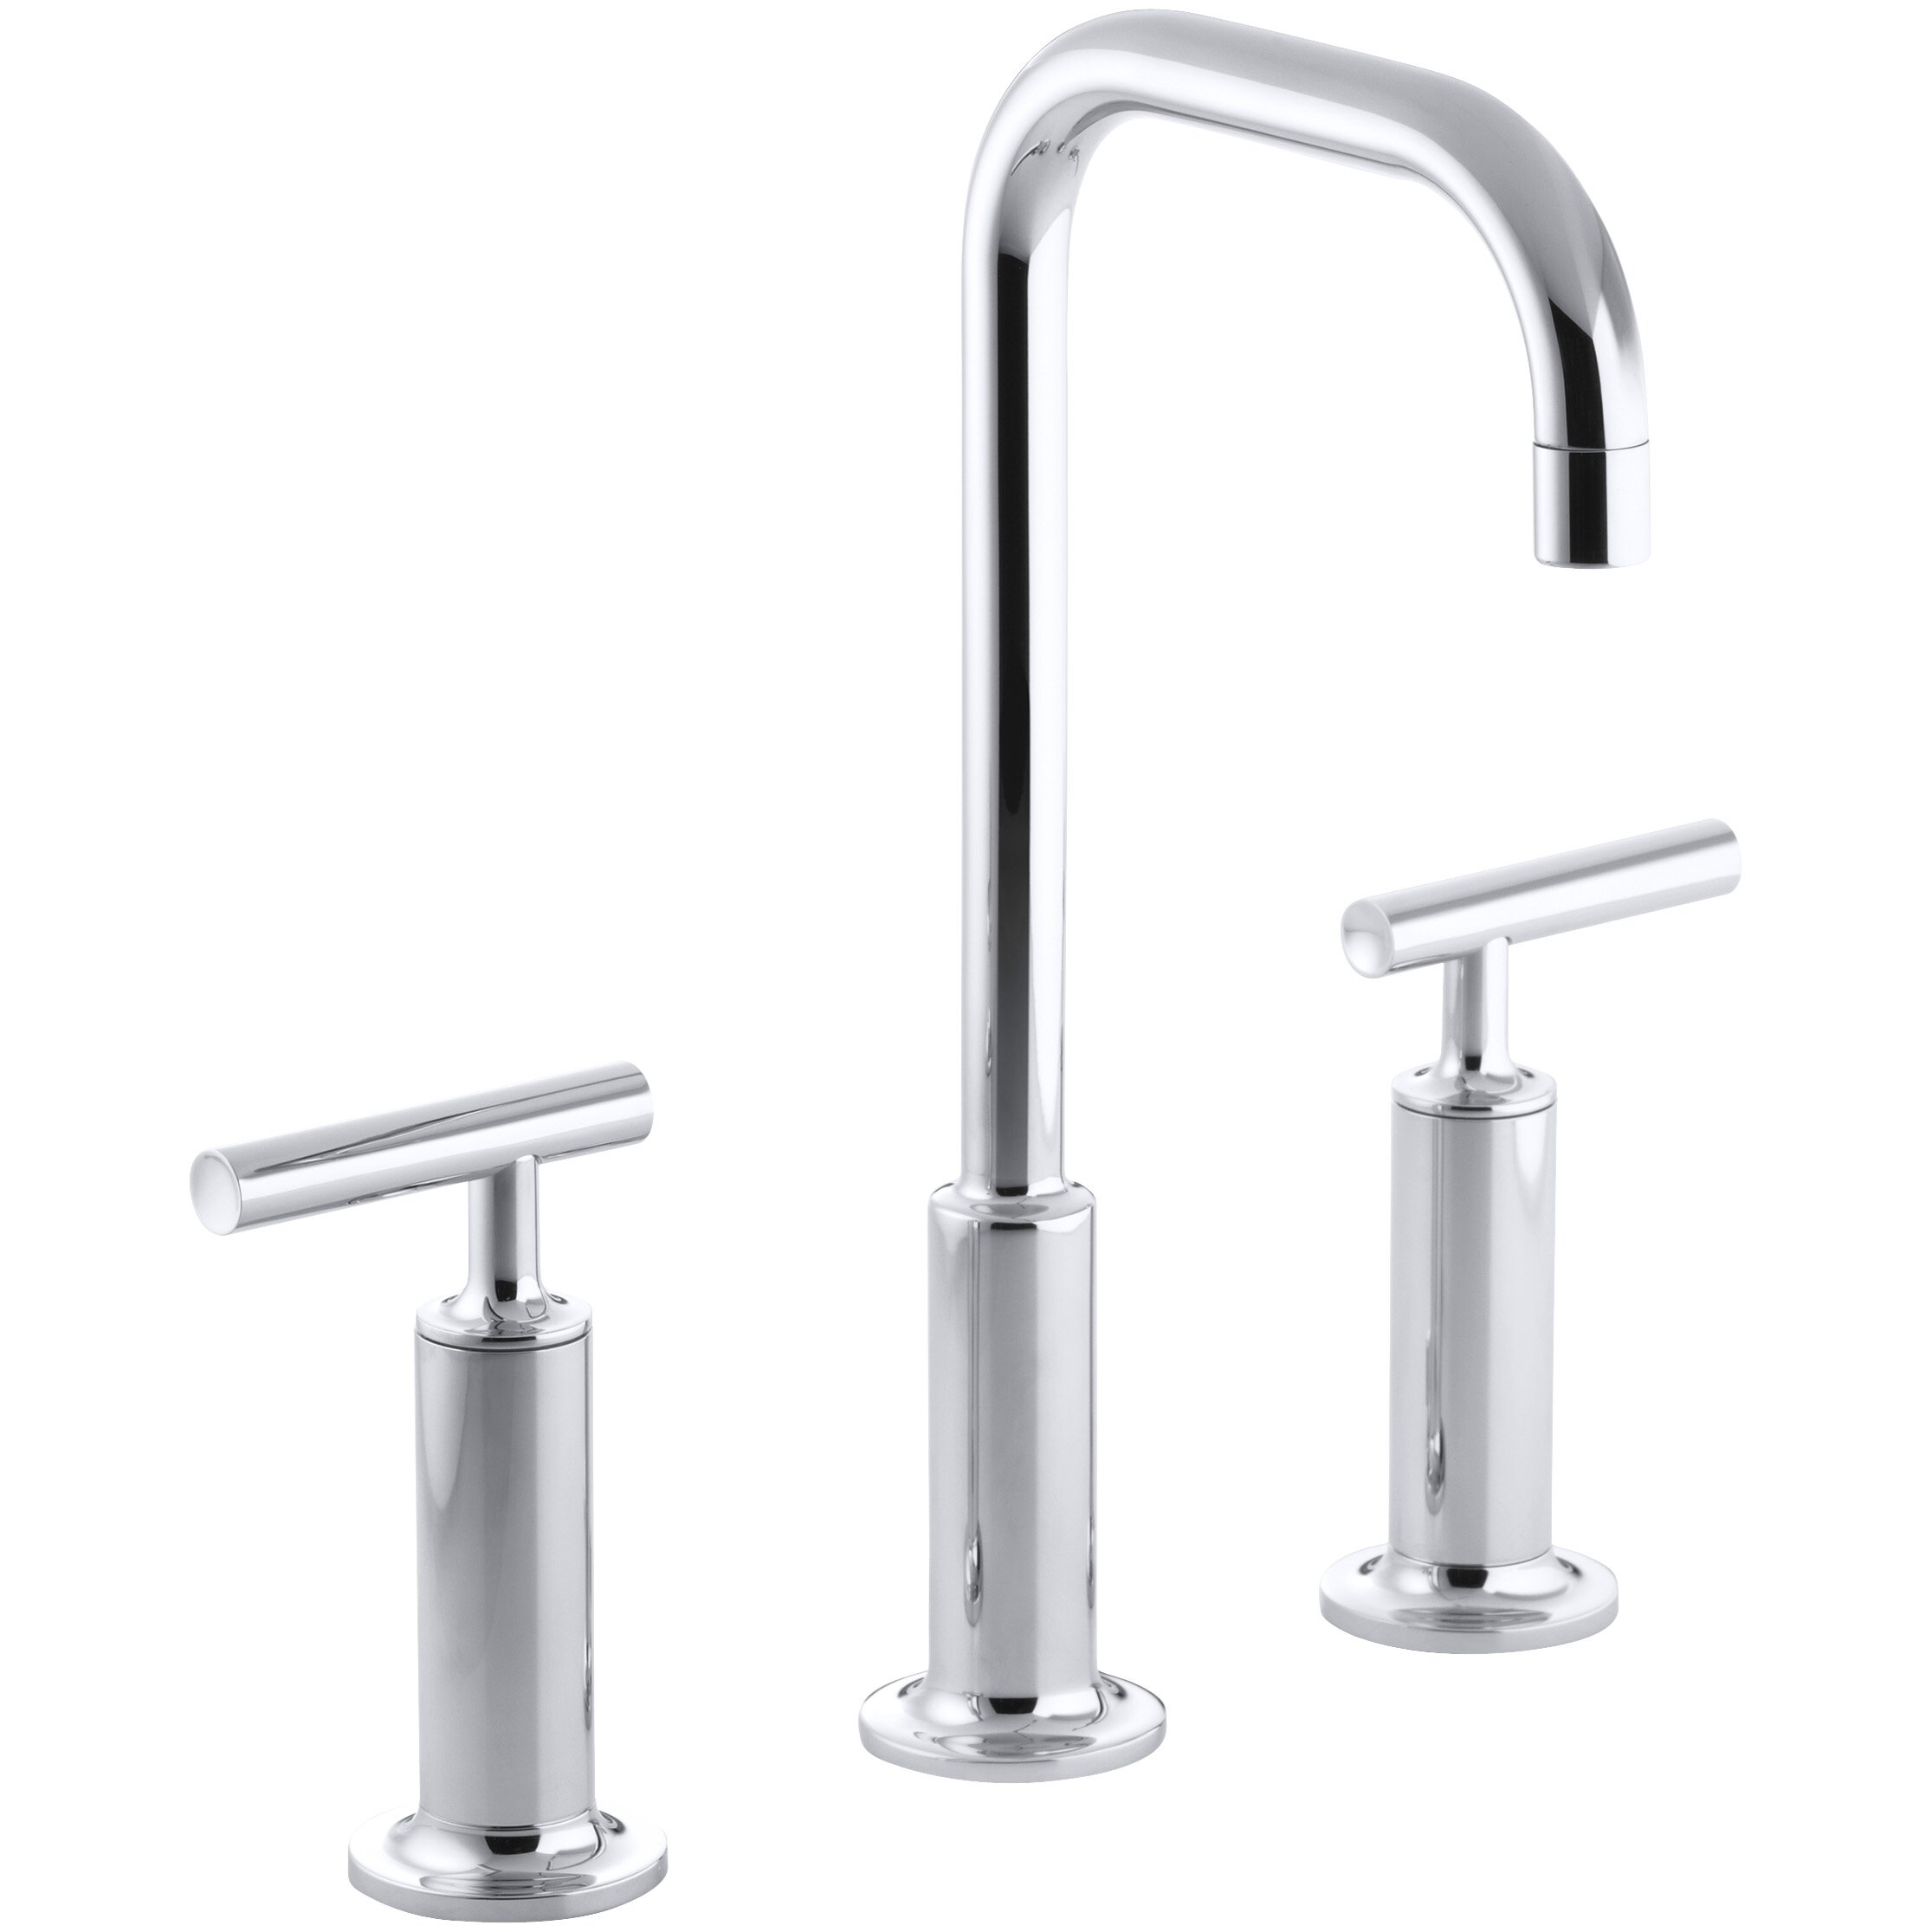 Kohler Purist Widespread Bathroom Sink Faucet With High Lever Handles And High Gooseneck Spout